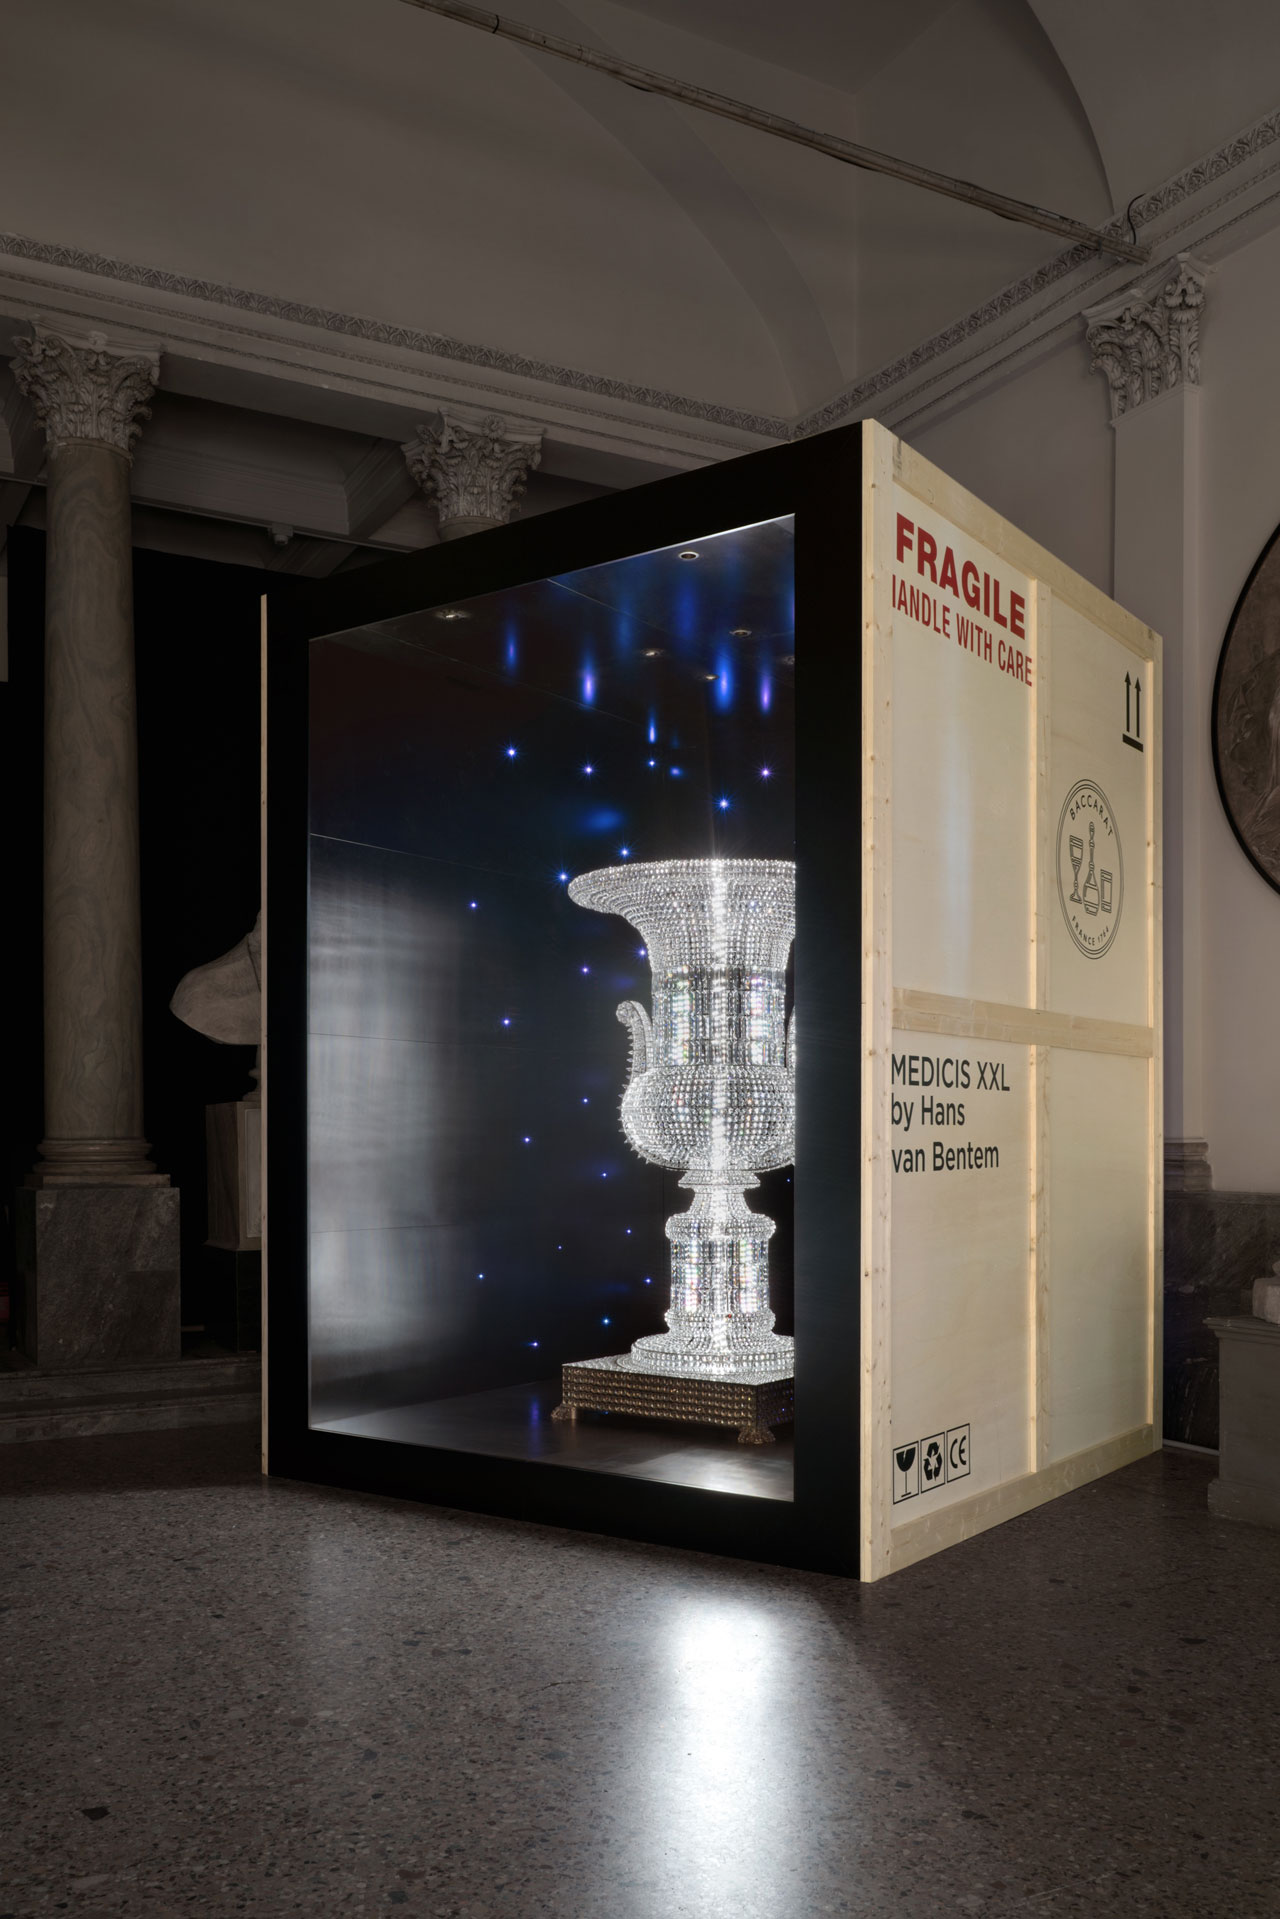 Lumières out of the box installation view at the Fine Arts Academy of Brera featuring Medicis XXL by Hans Van Bentem, an authentic masterpiece made of 13.000 octagons, translating the original marble Medicis vase of the classical period and its crystal version made by Baccarat in 1909.